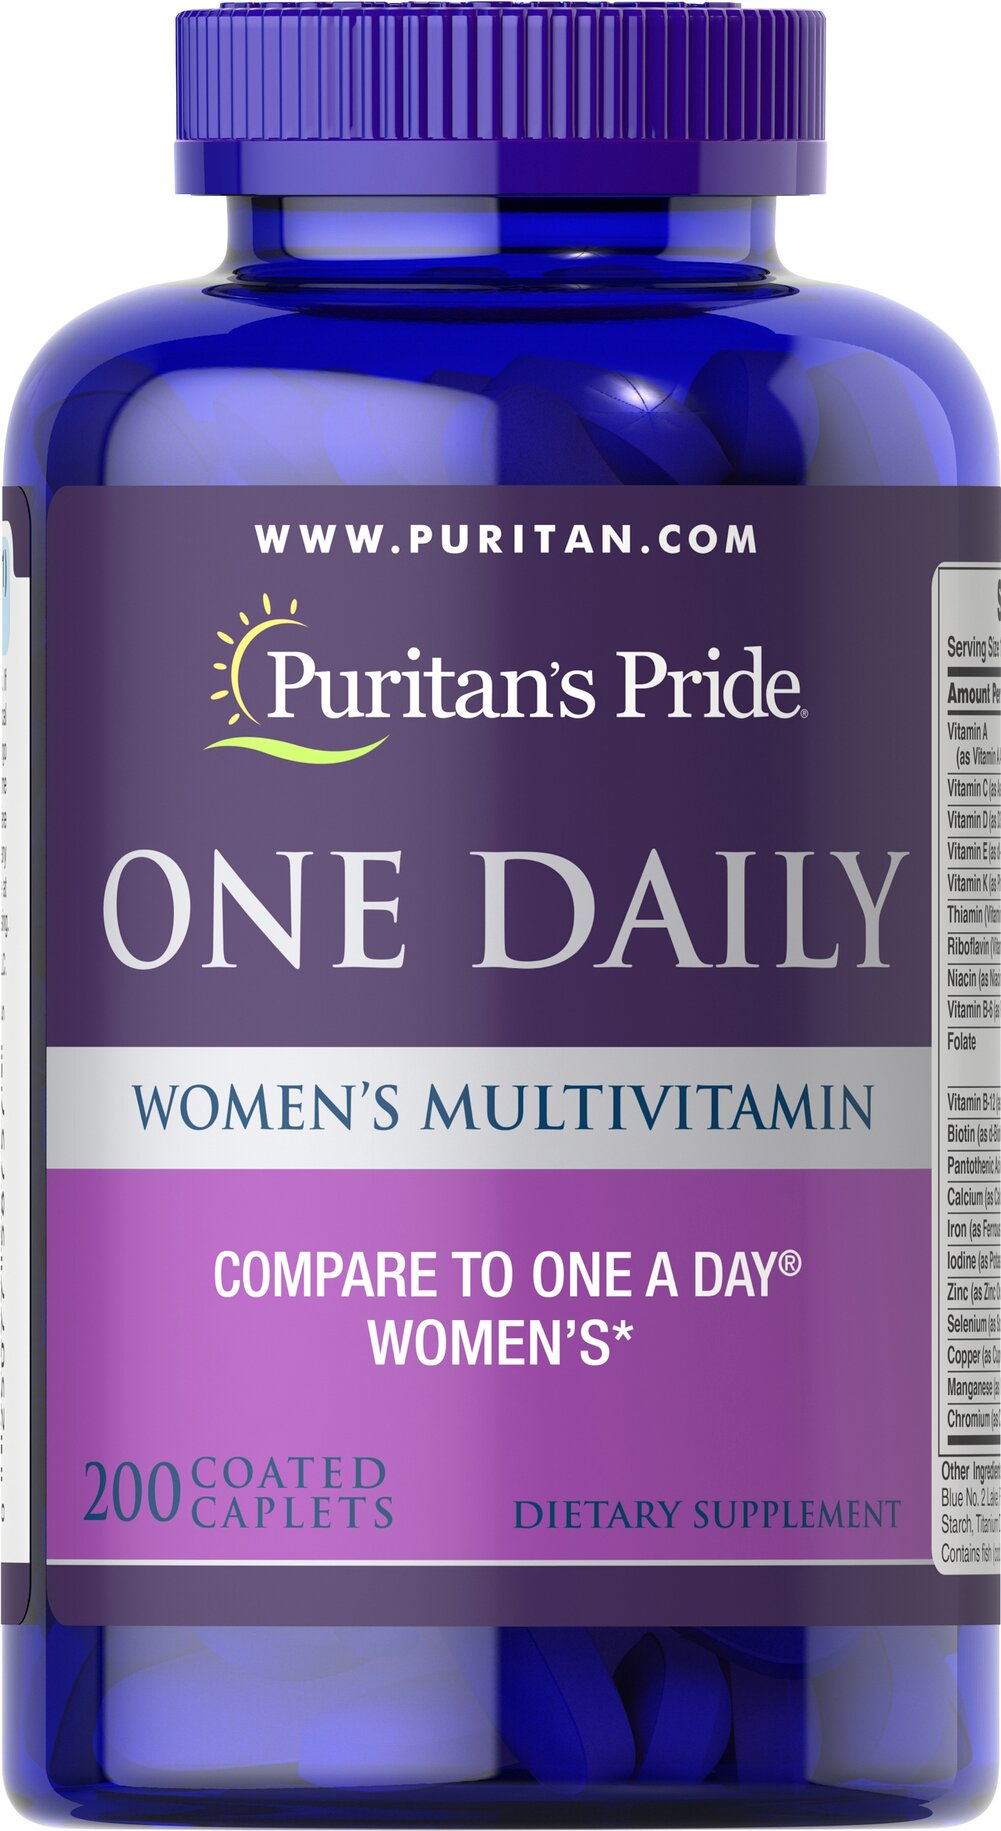 One Daily Women's  Multivitamin  200 Caplets  $24.99